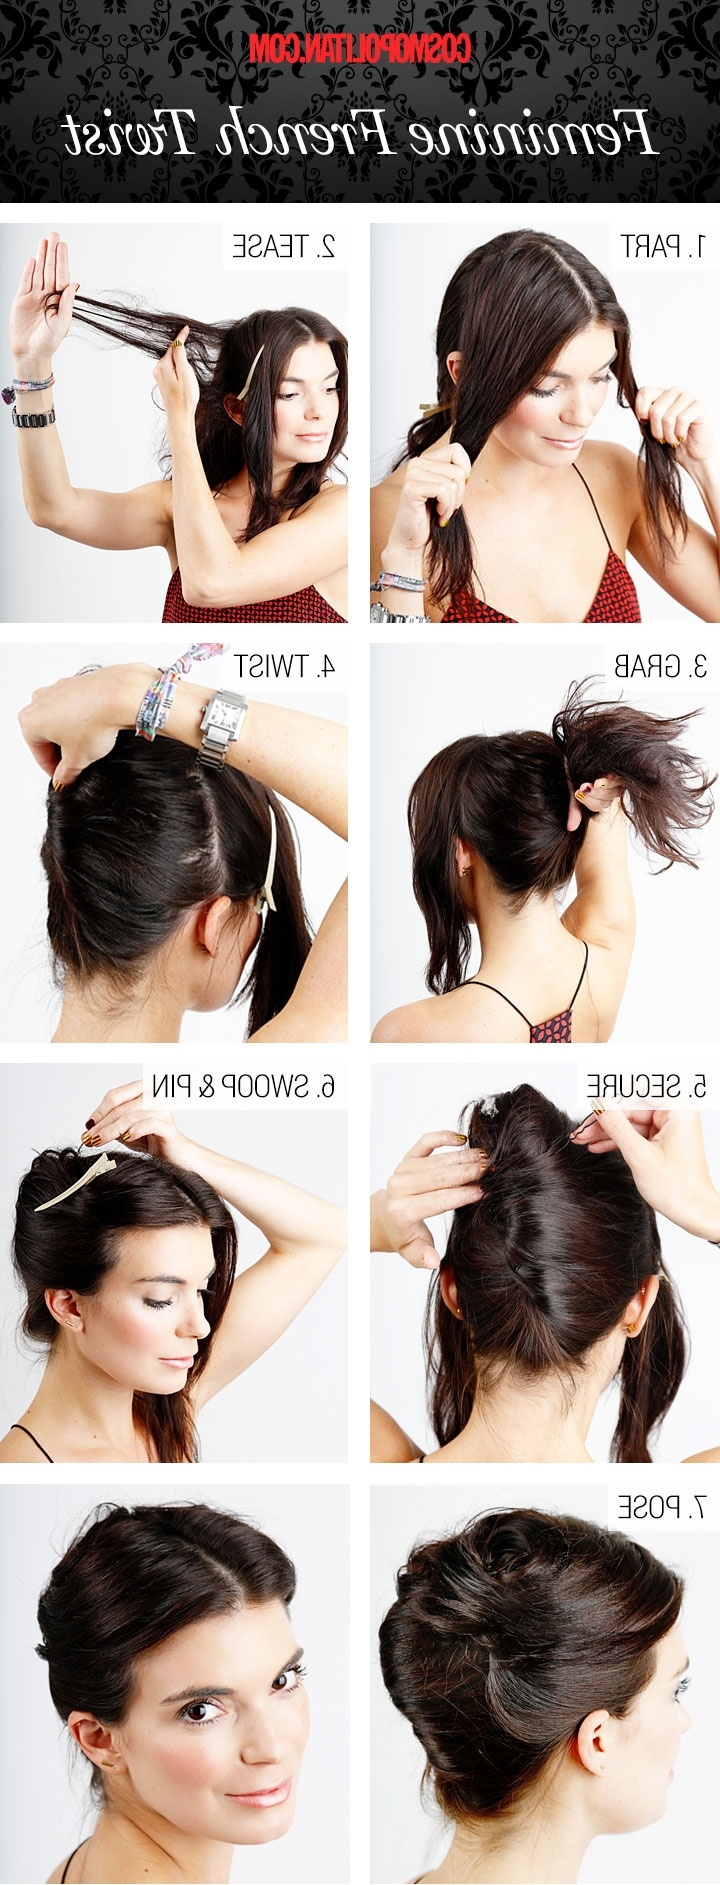 French Twist Hairstyle Pertaining To French Twist Updo Hairstyles For Short Hair (View 9 of 15)